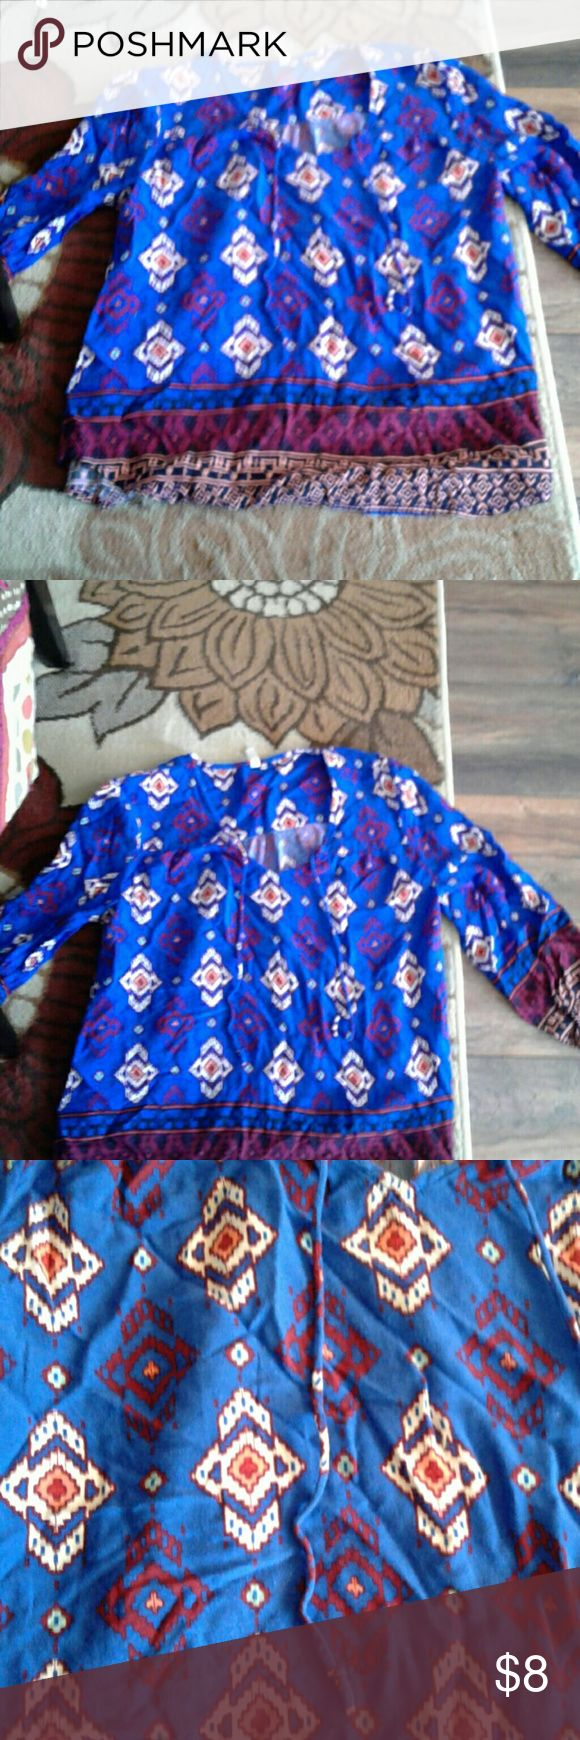 Red Camel women's size medium top This is an adorable women's size medium top.Red Camel brand.suoer cute top!...from a smoke free and pet free home Red Camel Tops Blouses